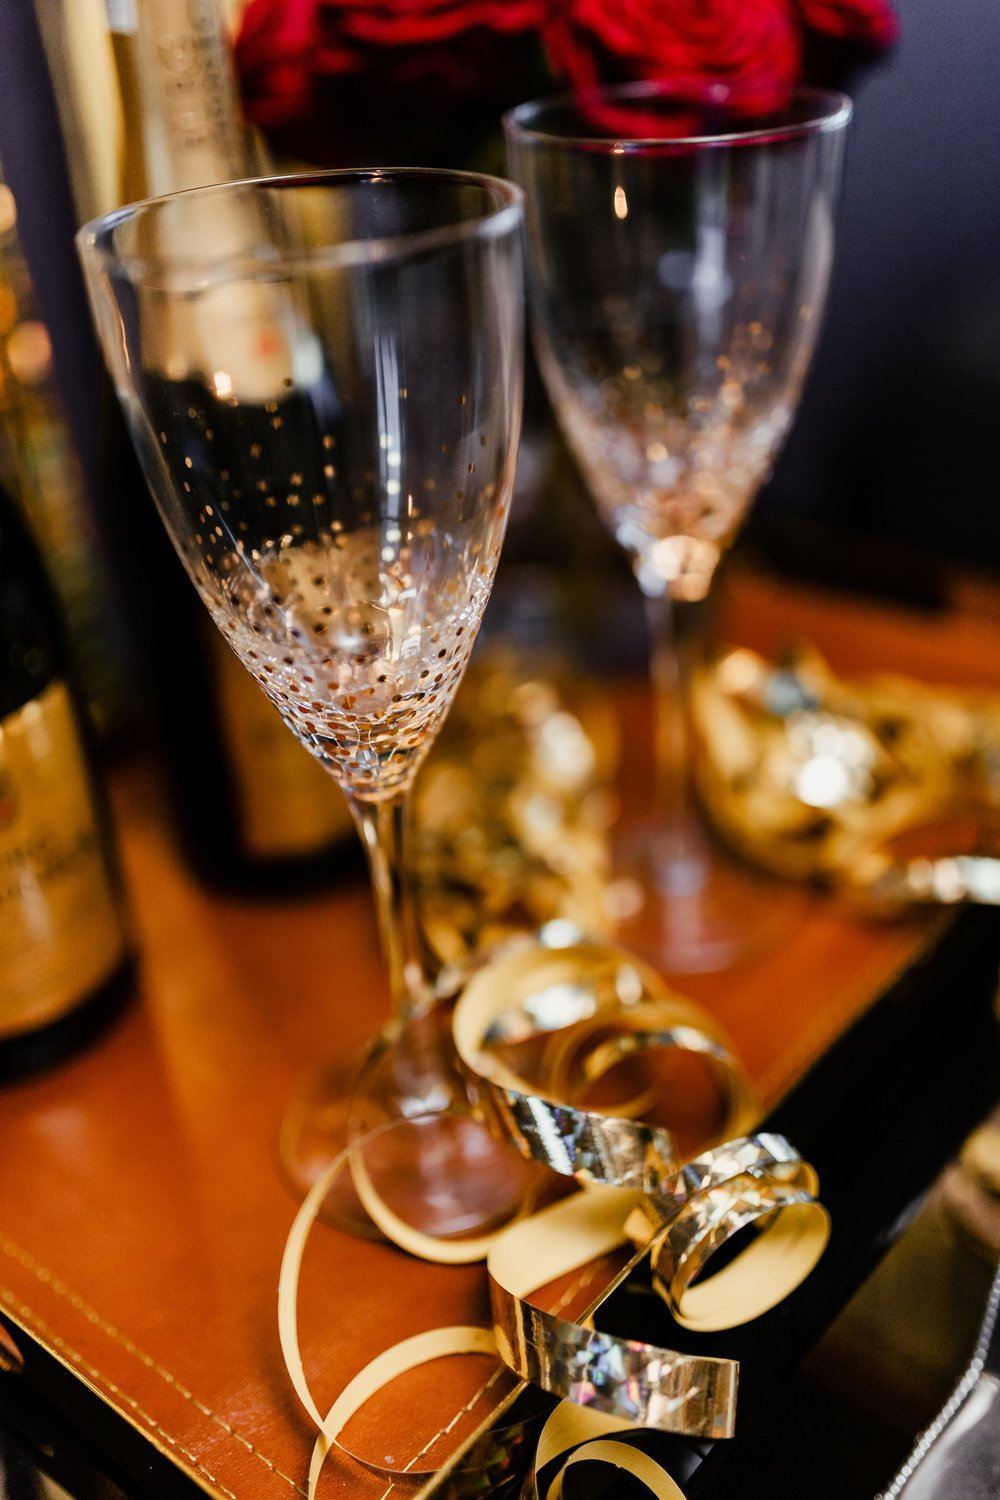 kaboompics_New Year's Eve party - bottle of champagne, glasses & red roses (1).jpg